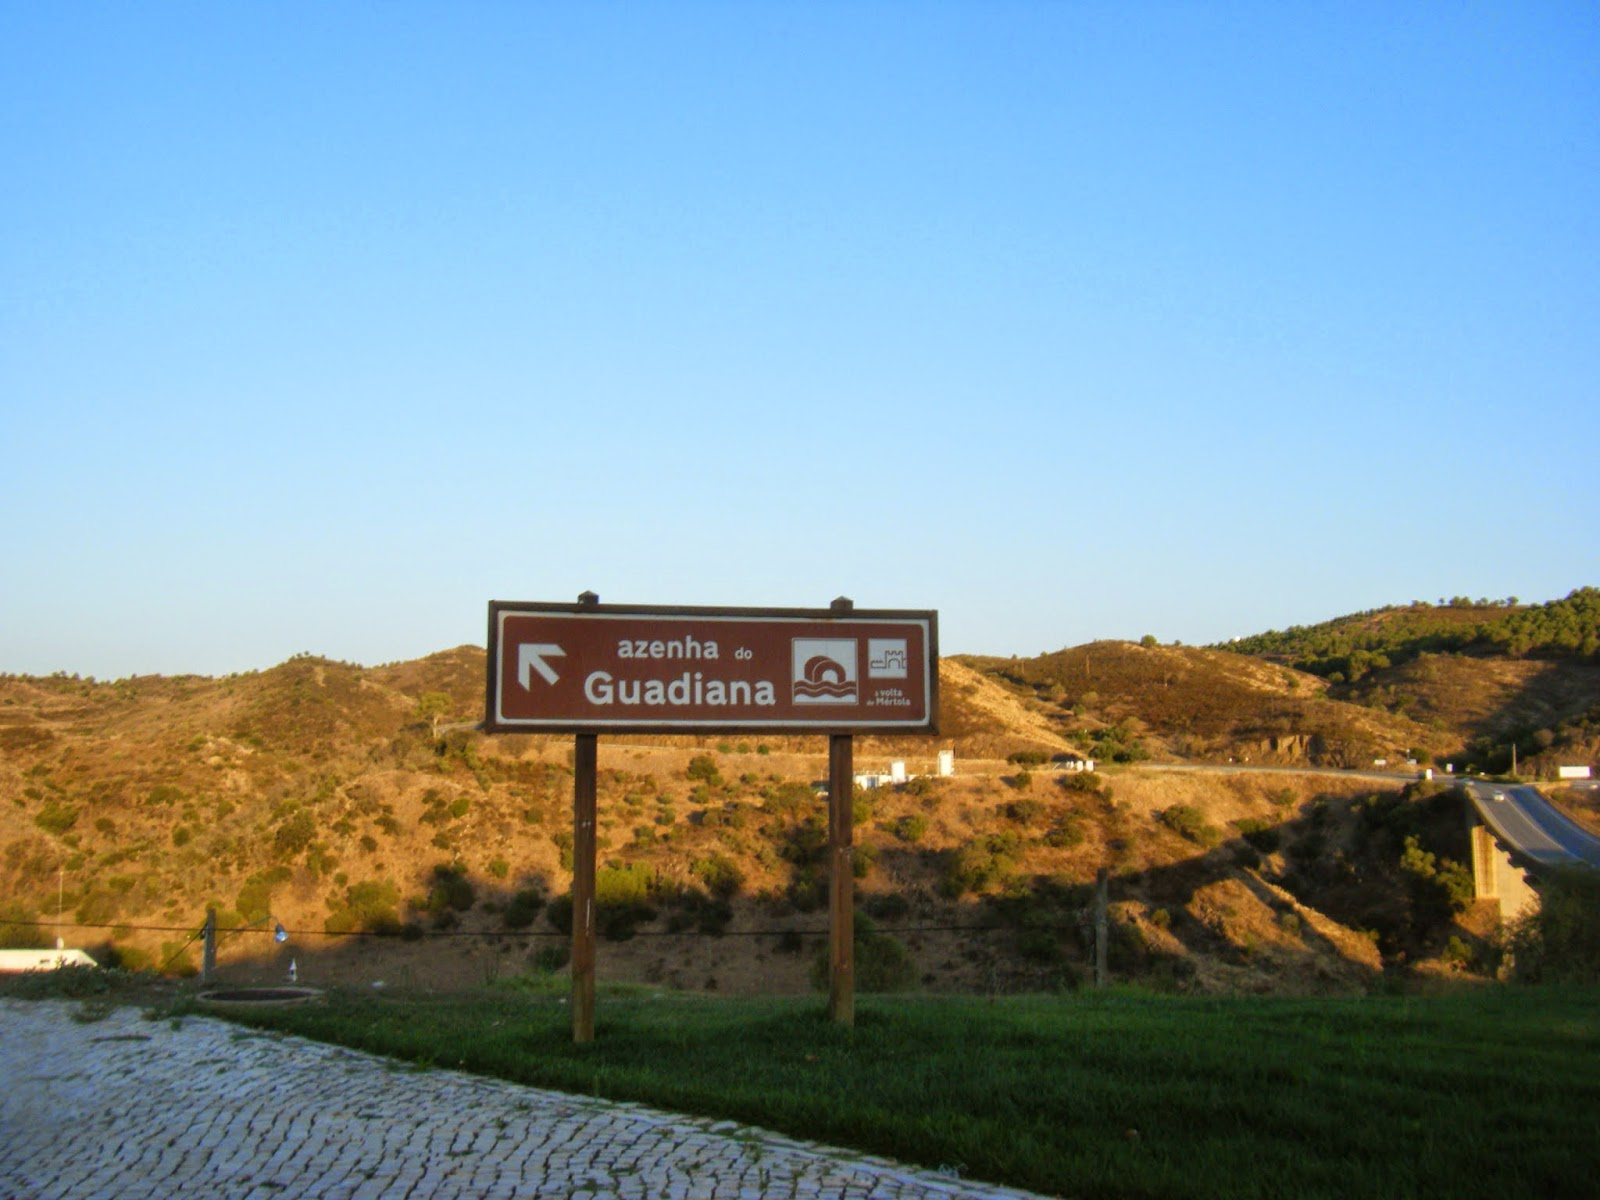 Placa Azenha do Guadiana